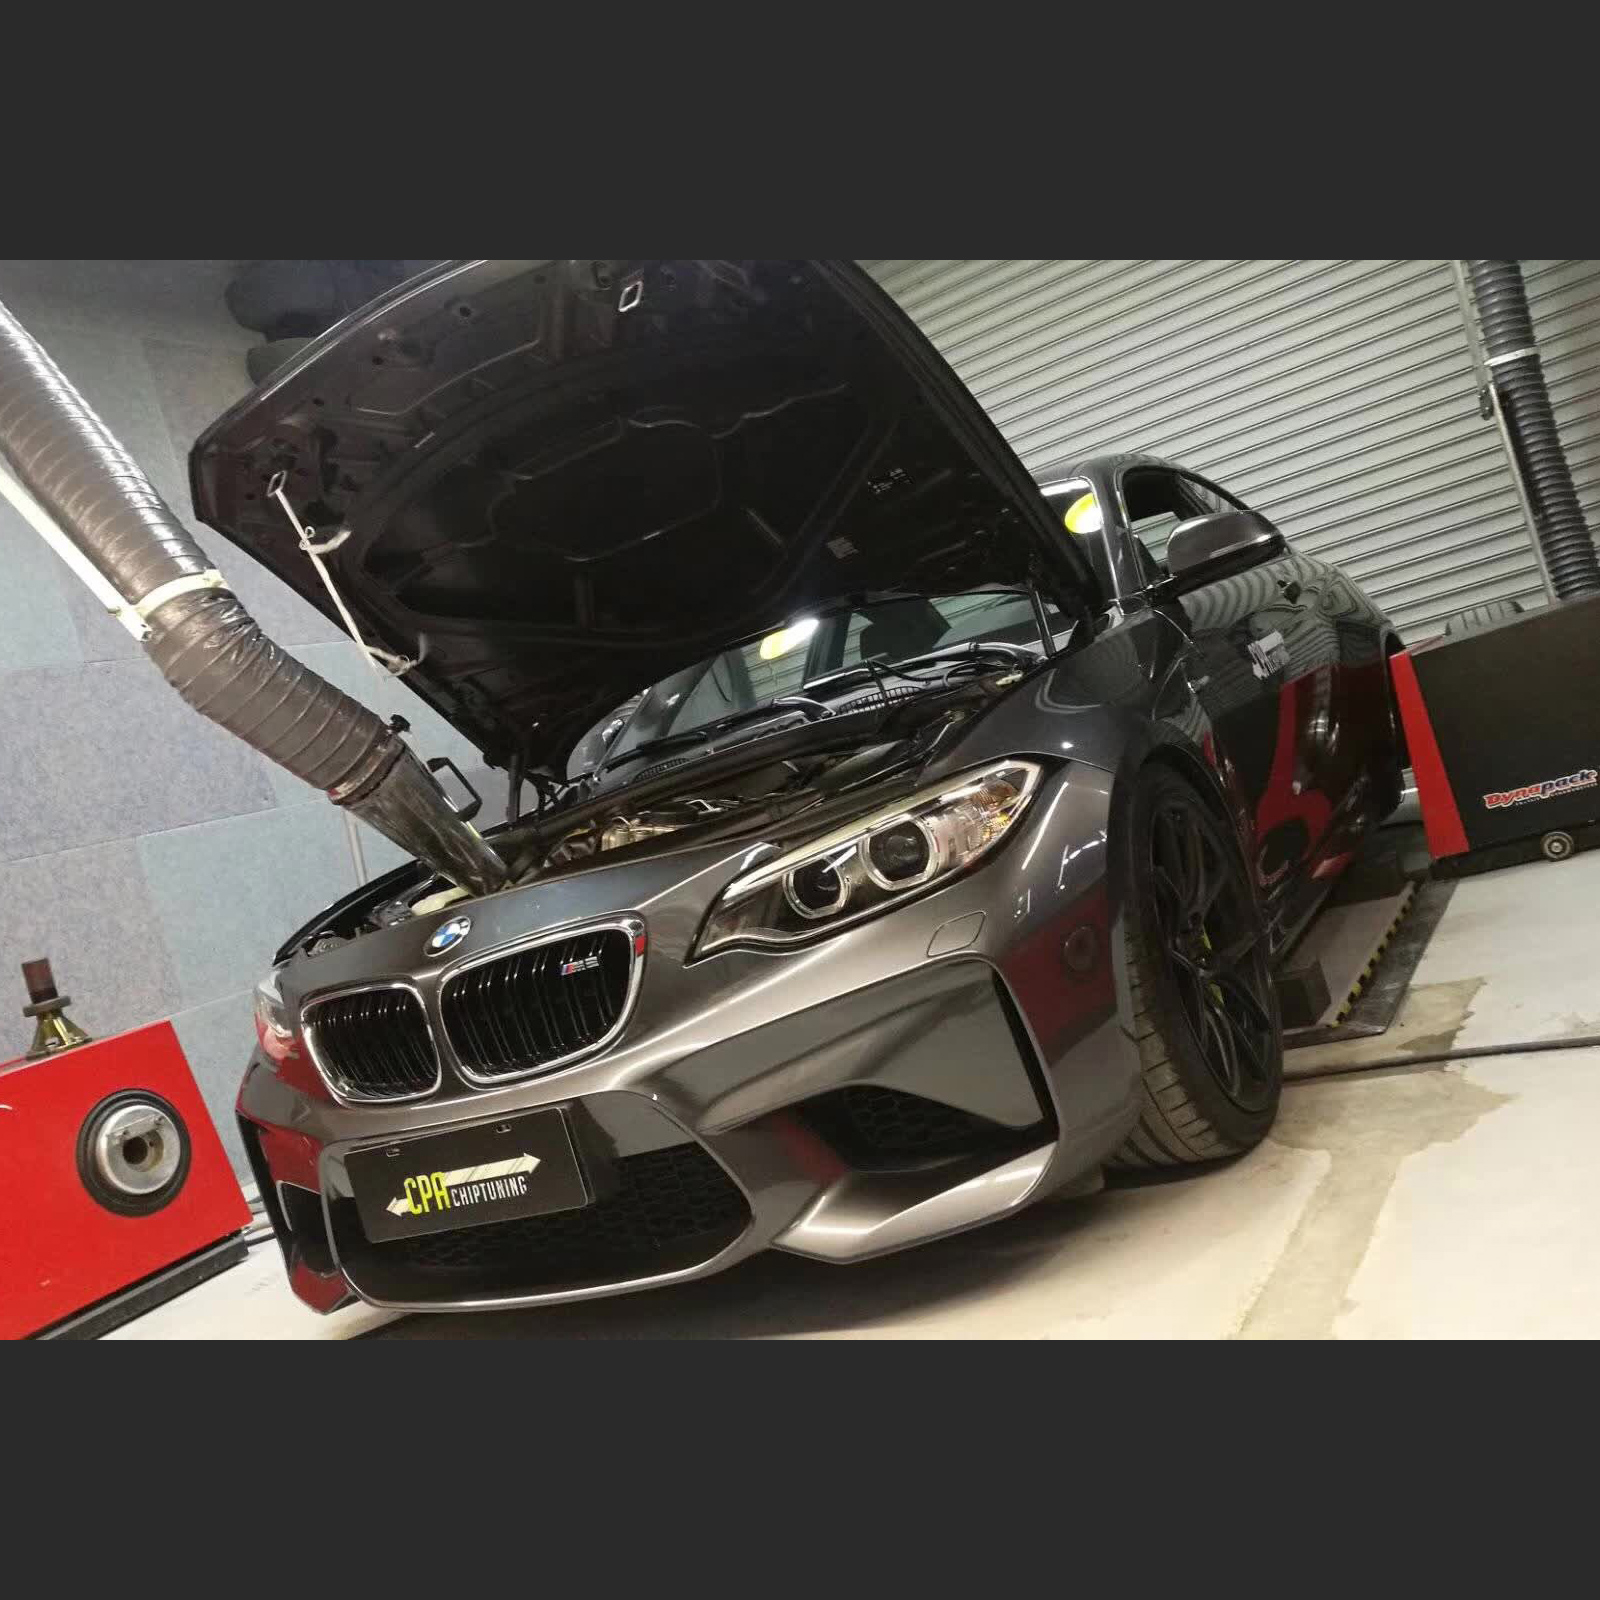 Fullt potensiale for BMW M2